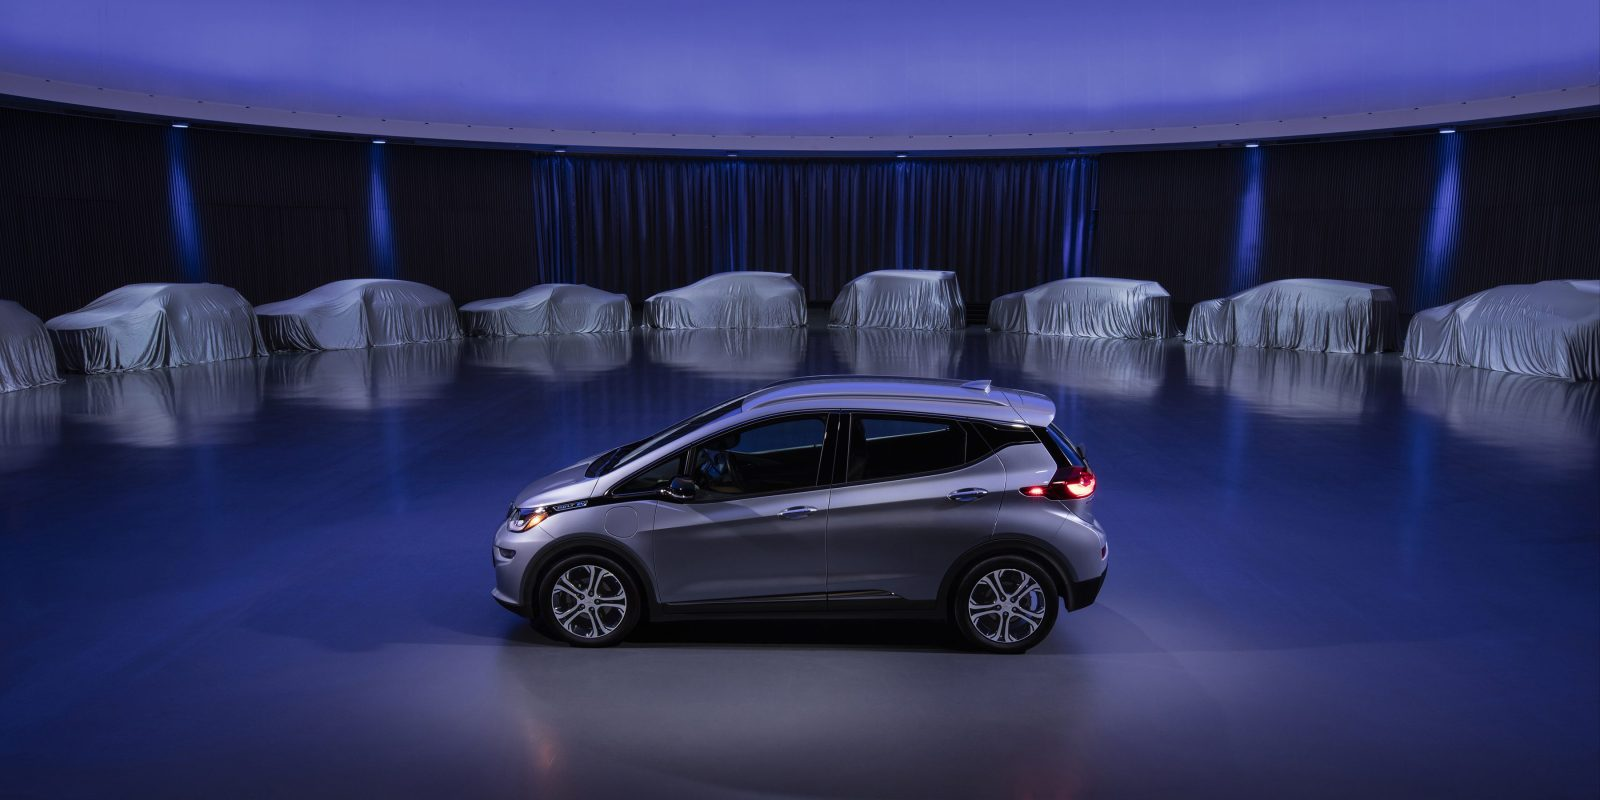 GM announces plans for 5 new EV models by 5 — some to be